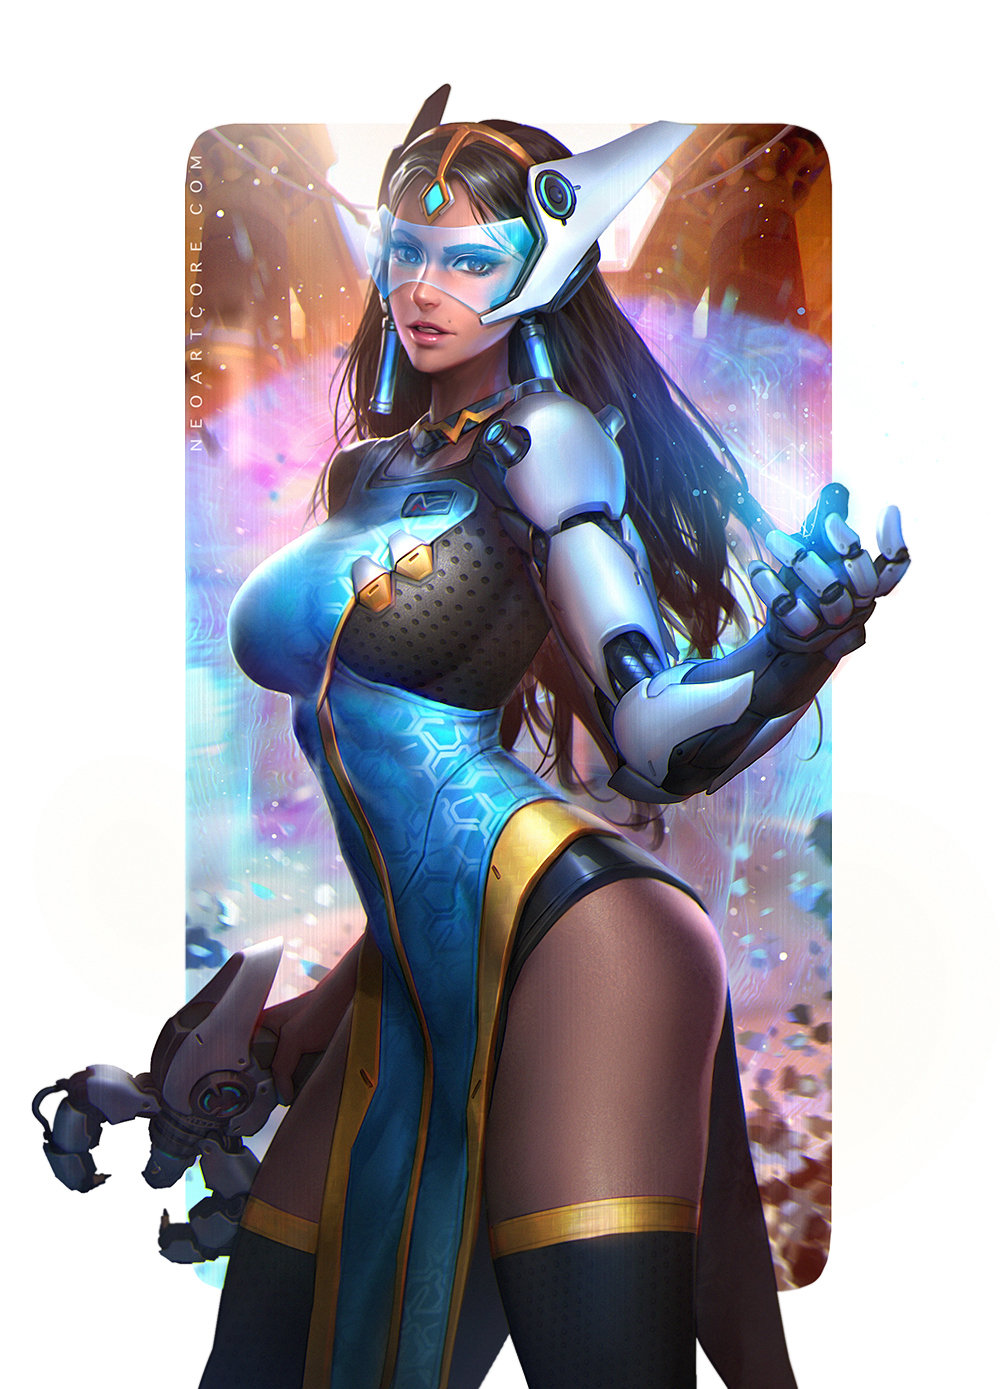 symmetra_final_by_neoartcore-d87x8mn